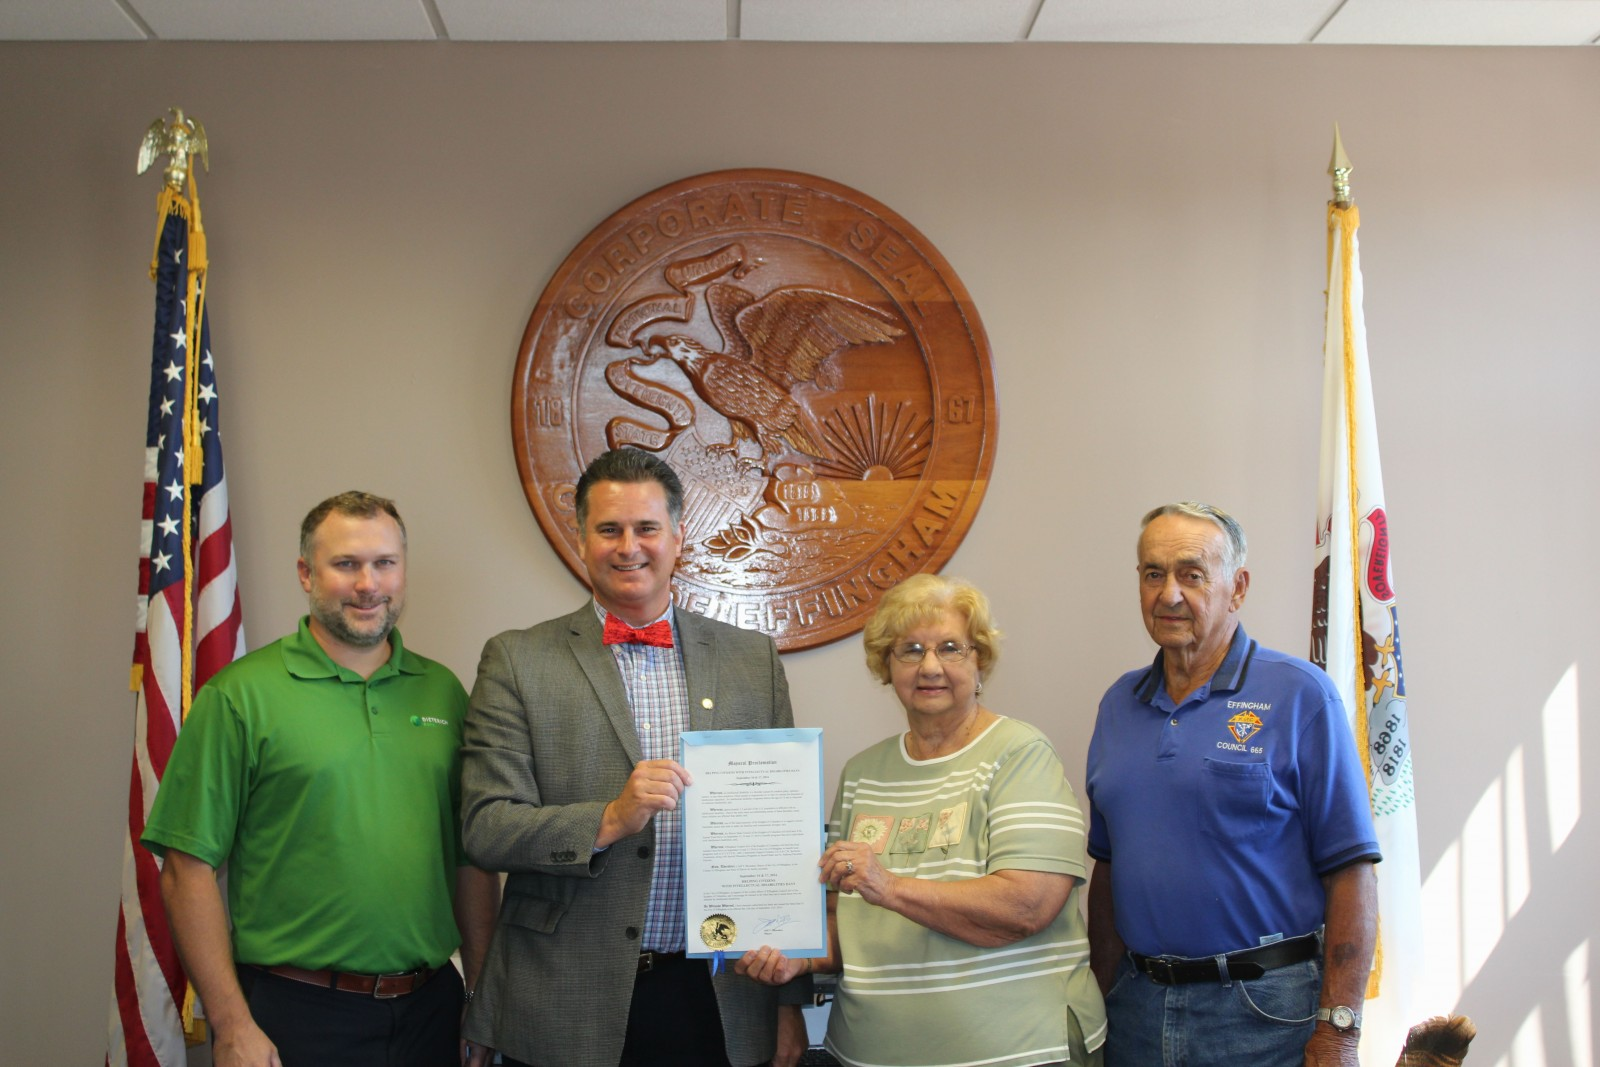 Mayor Bloemker and Mary Ann and Grand Knight Jim Bierman, and ID Drive Committee member Jason Semple.